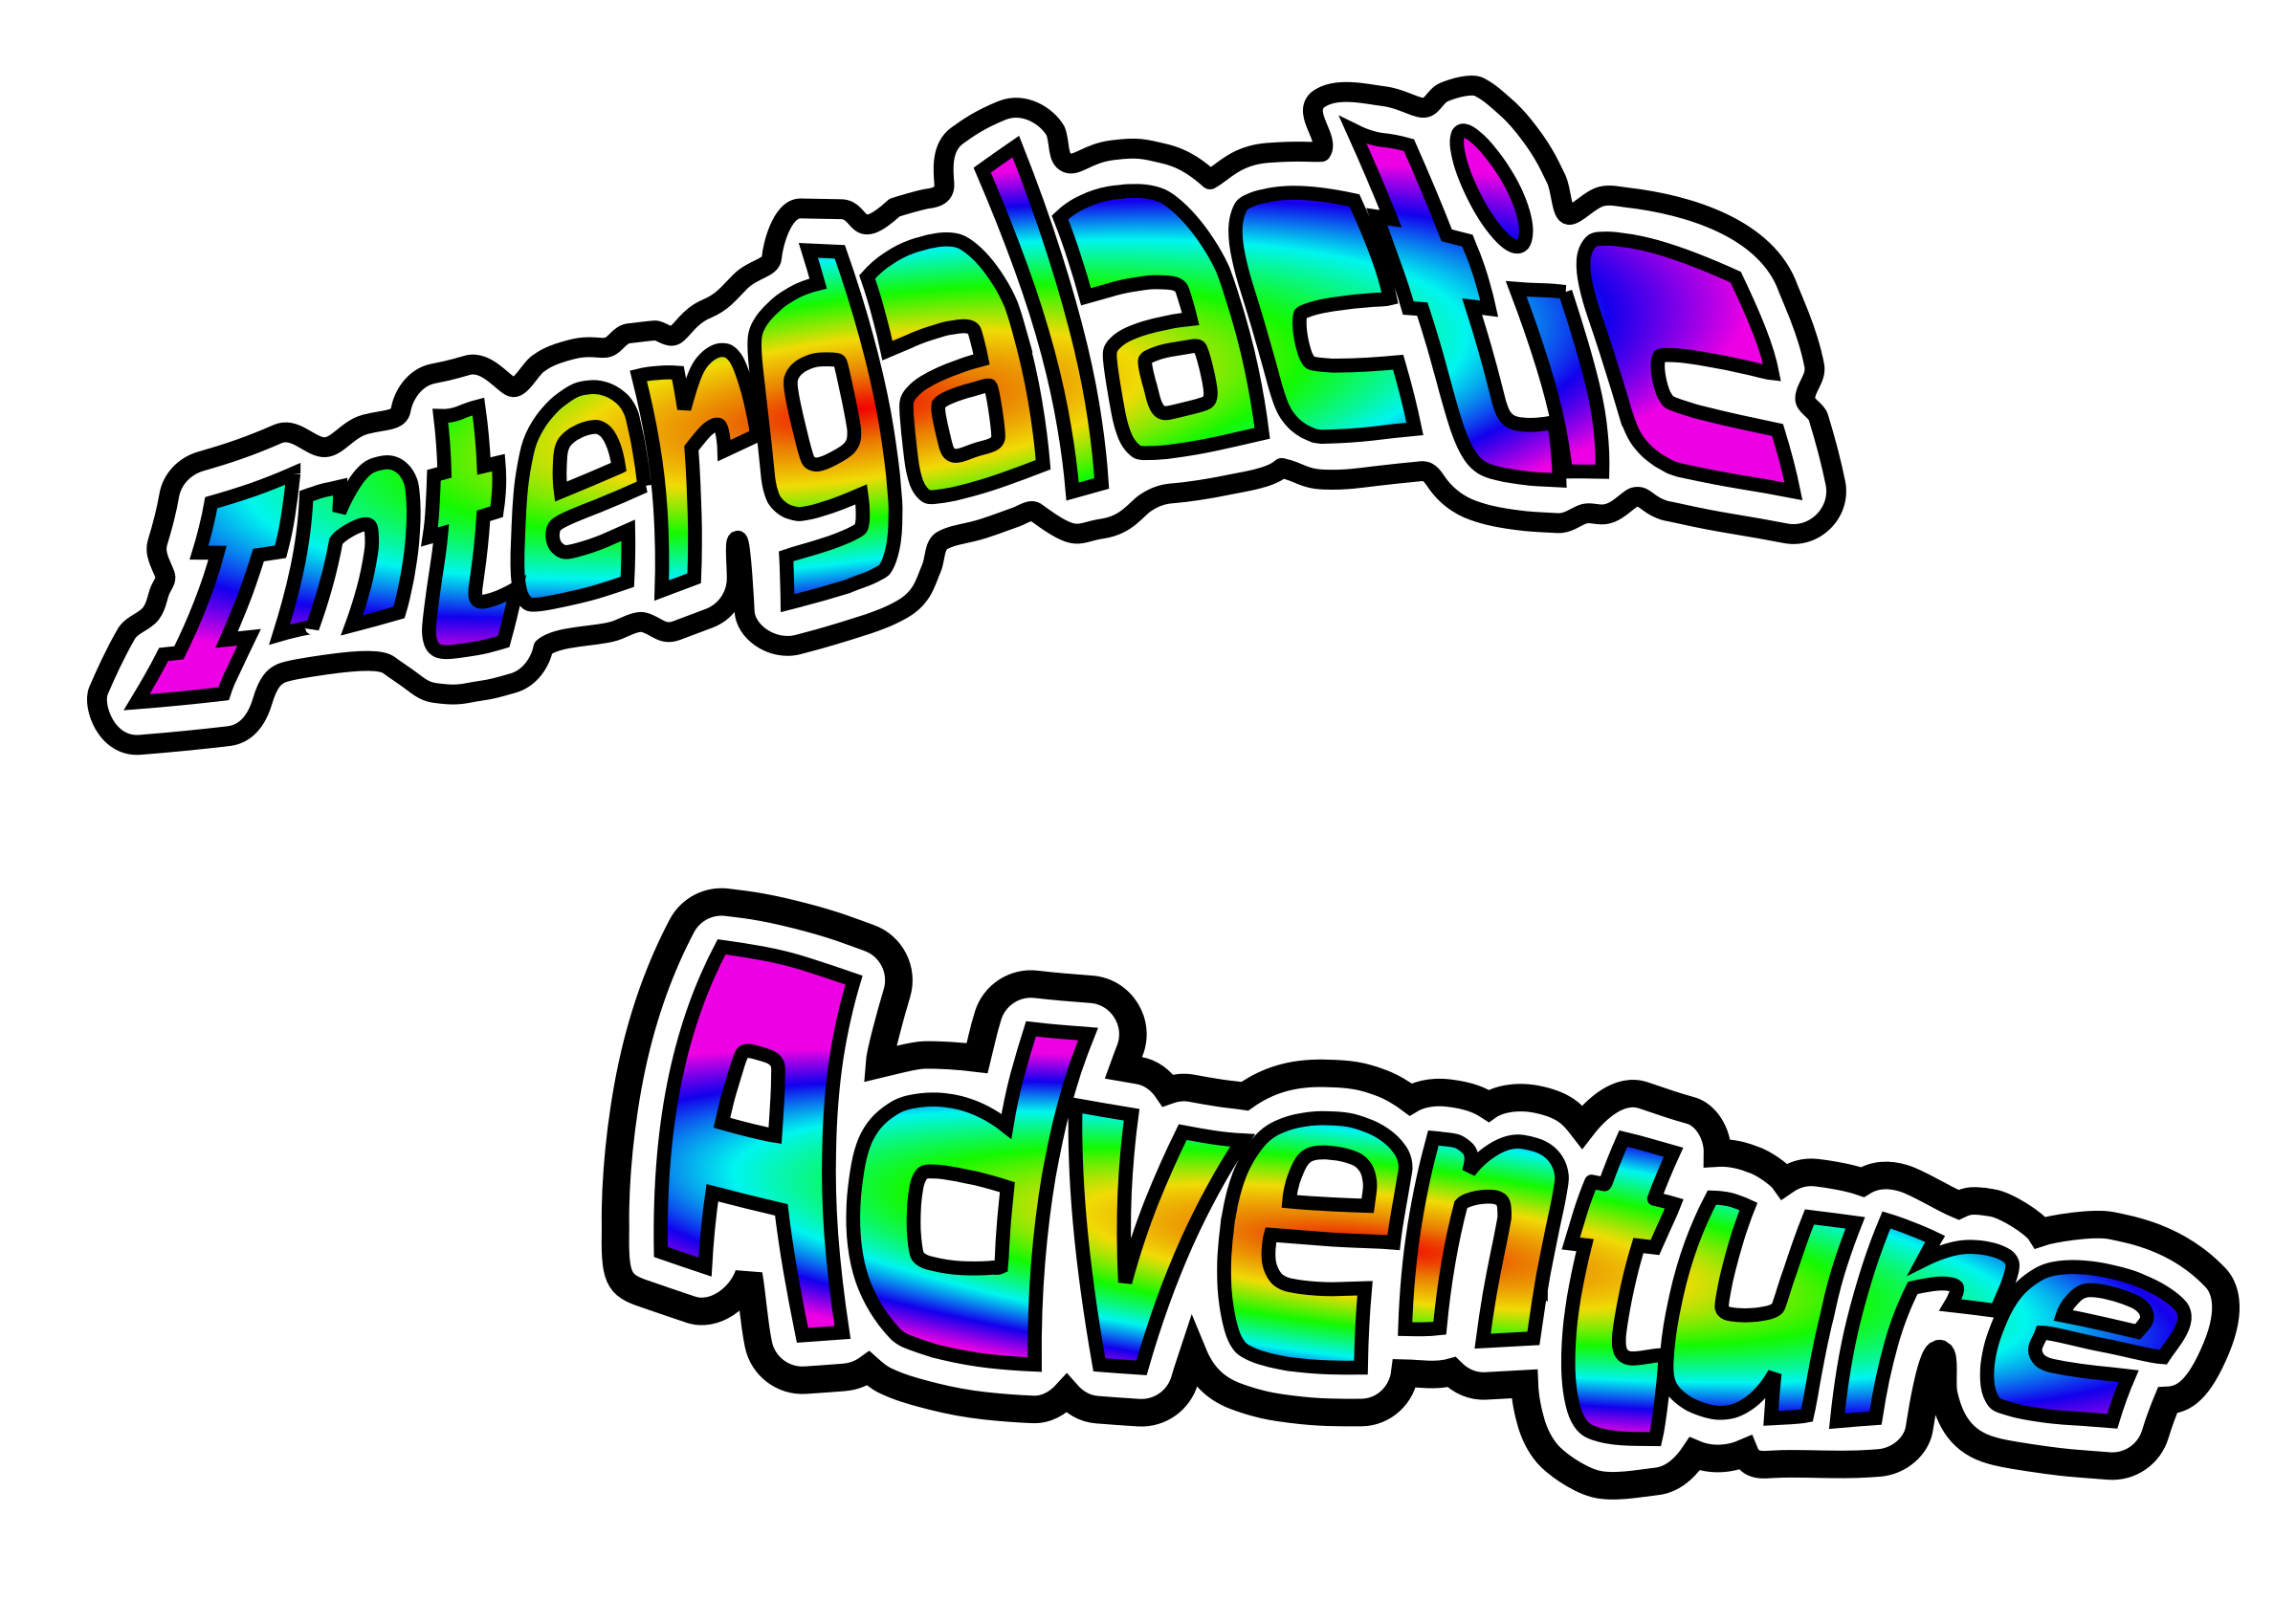 Intergalactic Adventure Logo Text by rygle